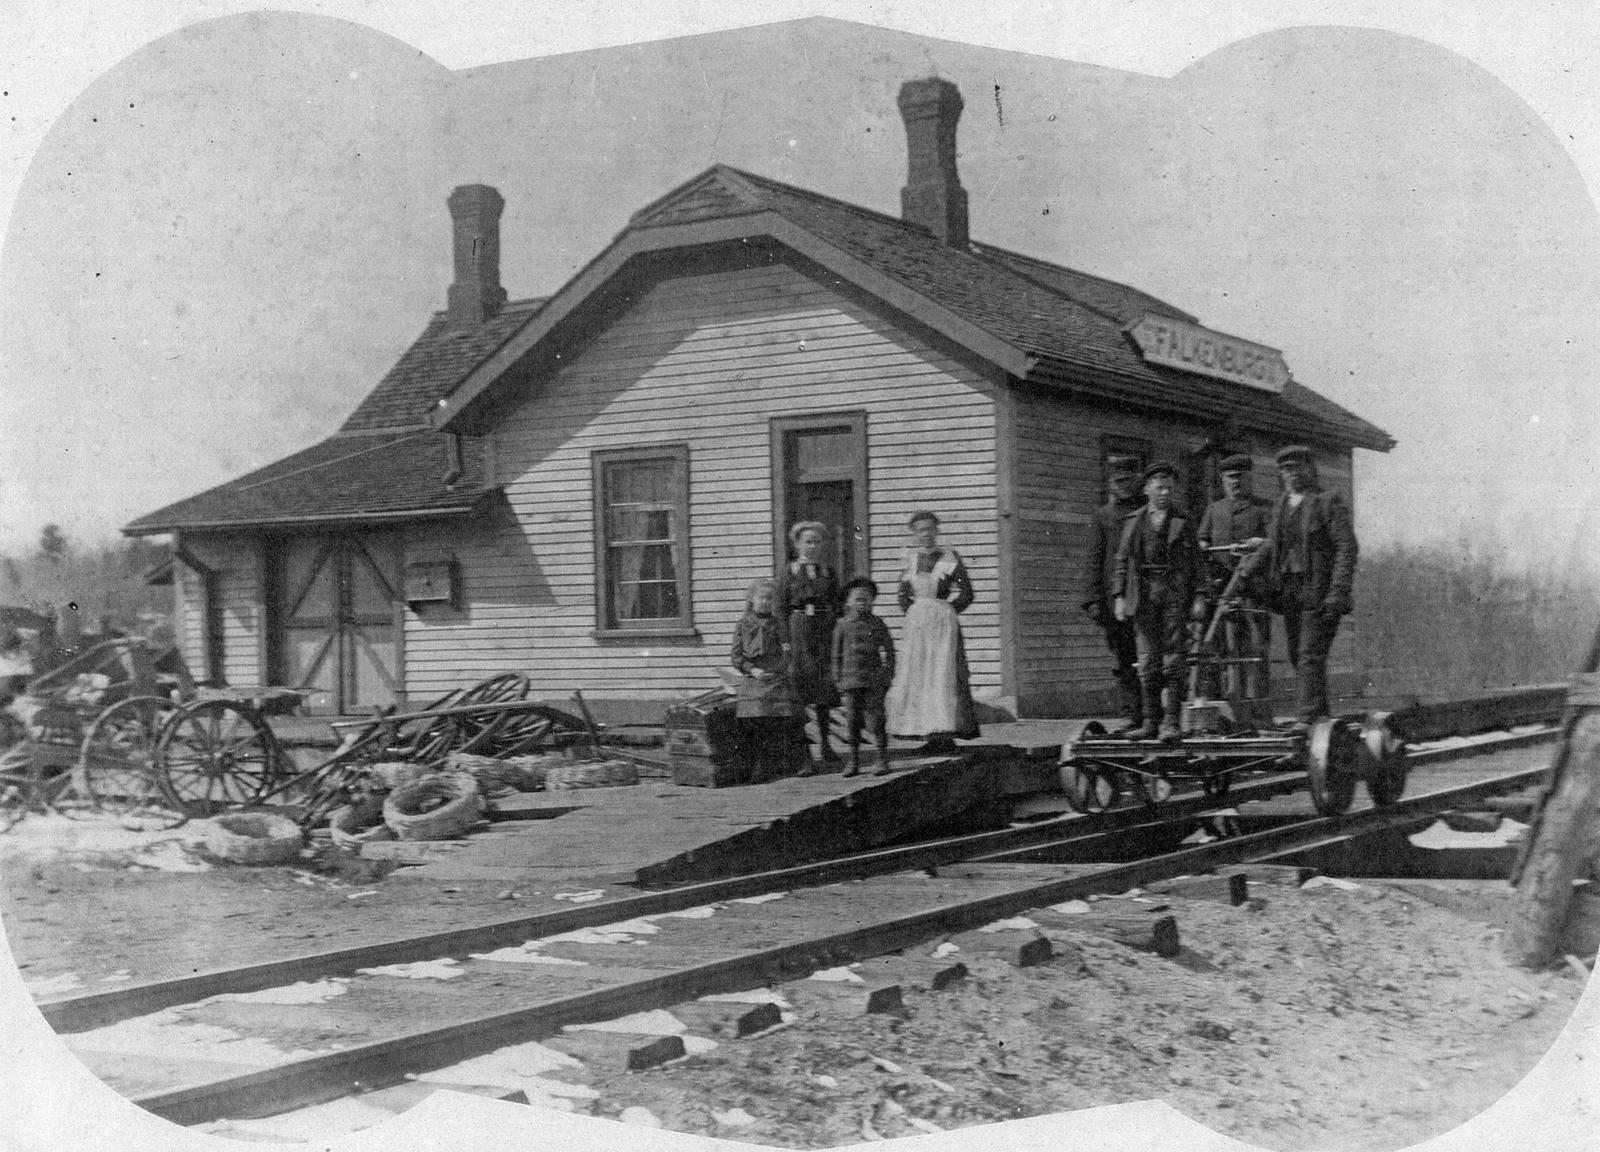 Train station at Falkenburg, Ontario